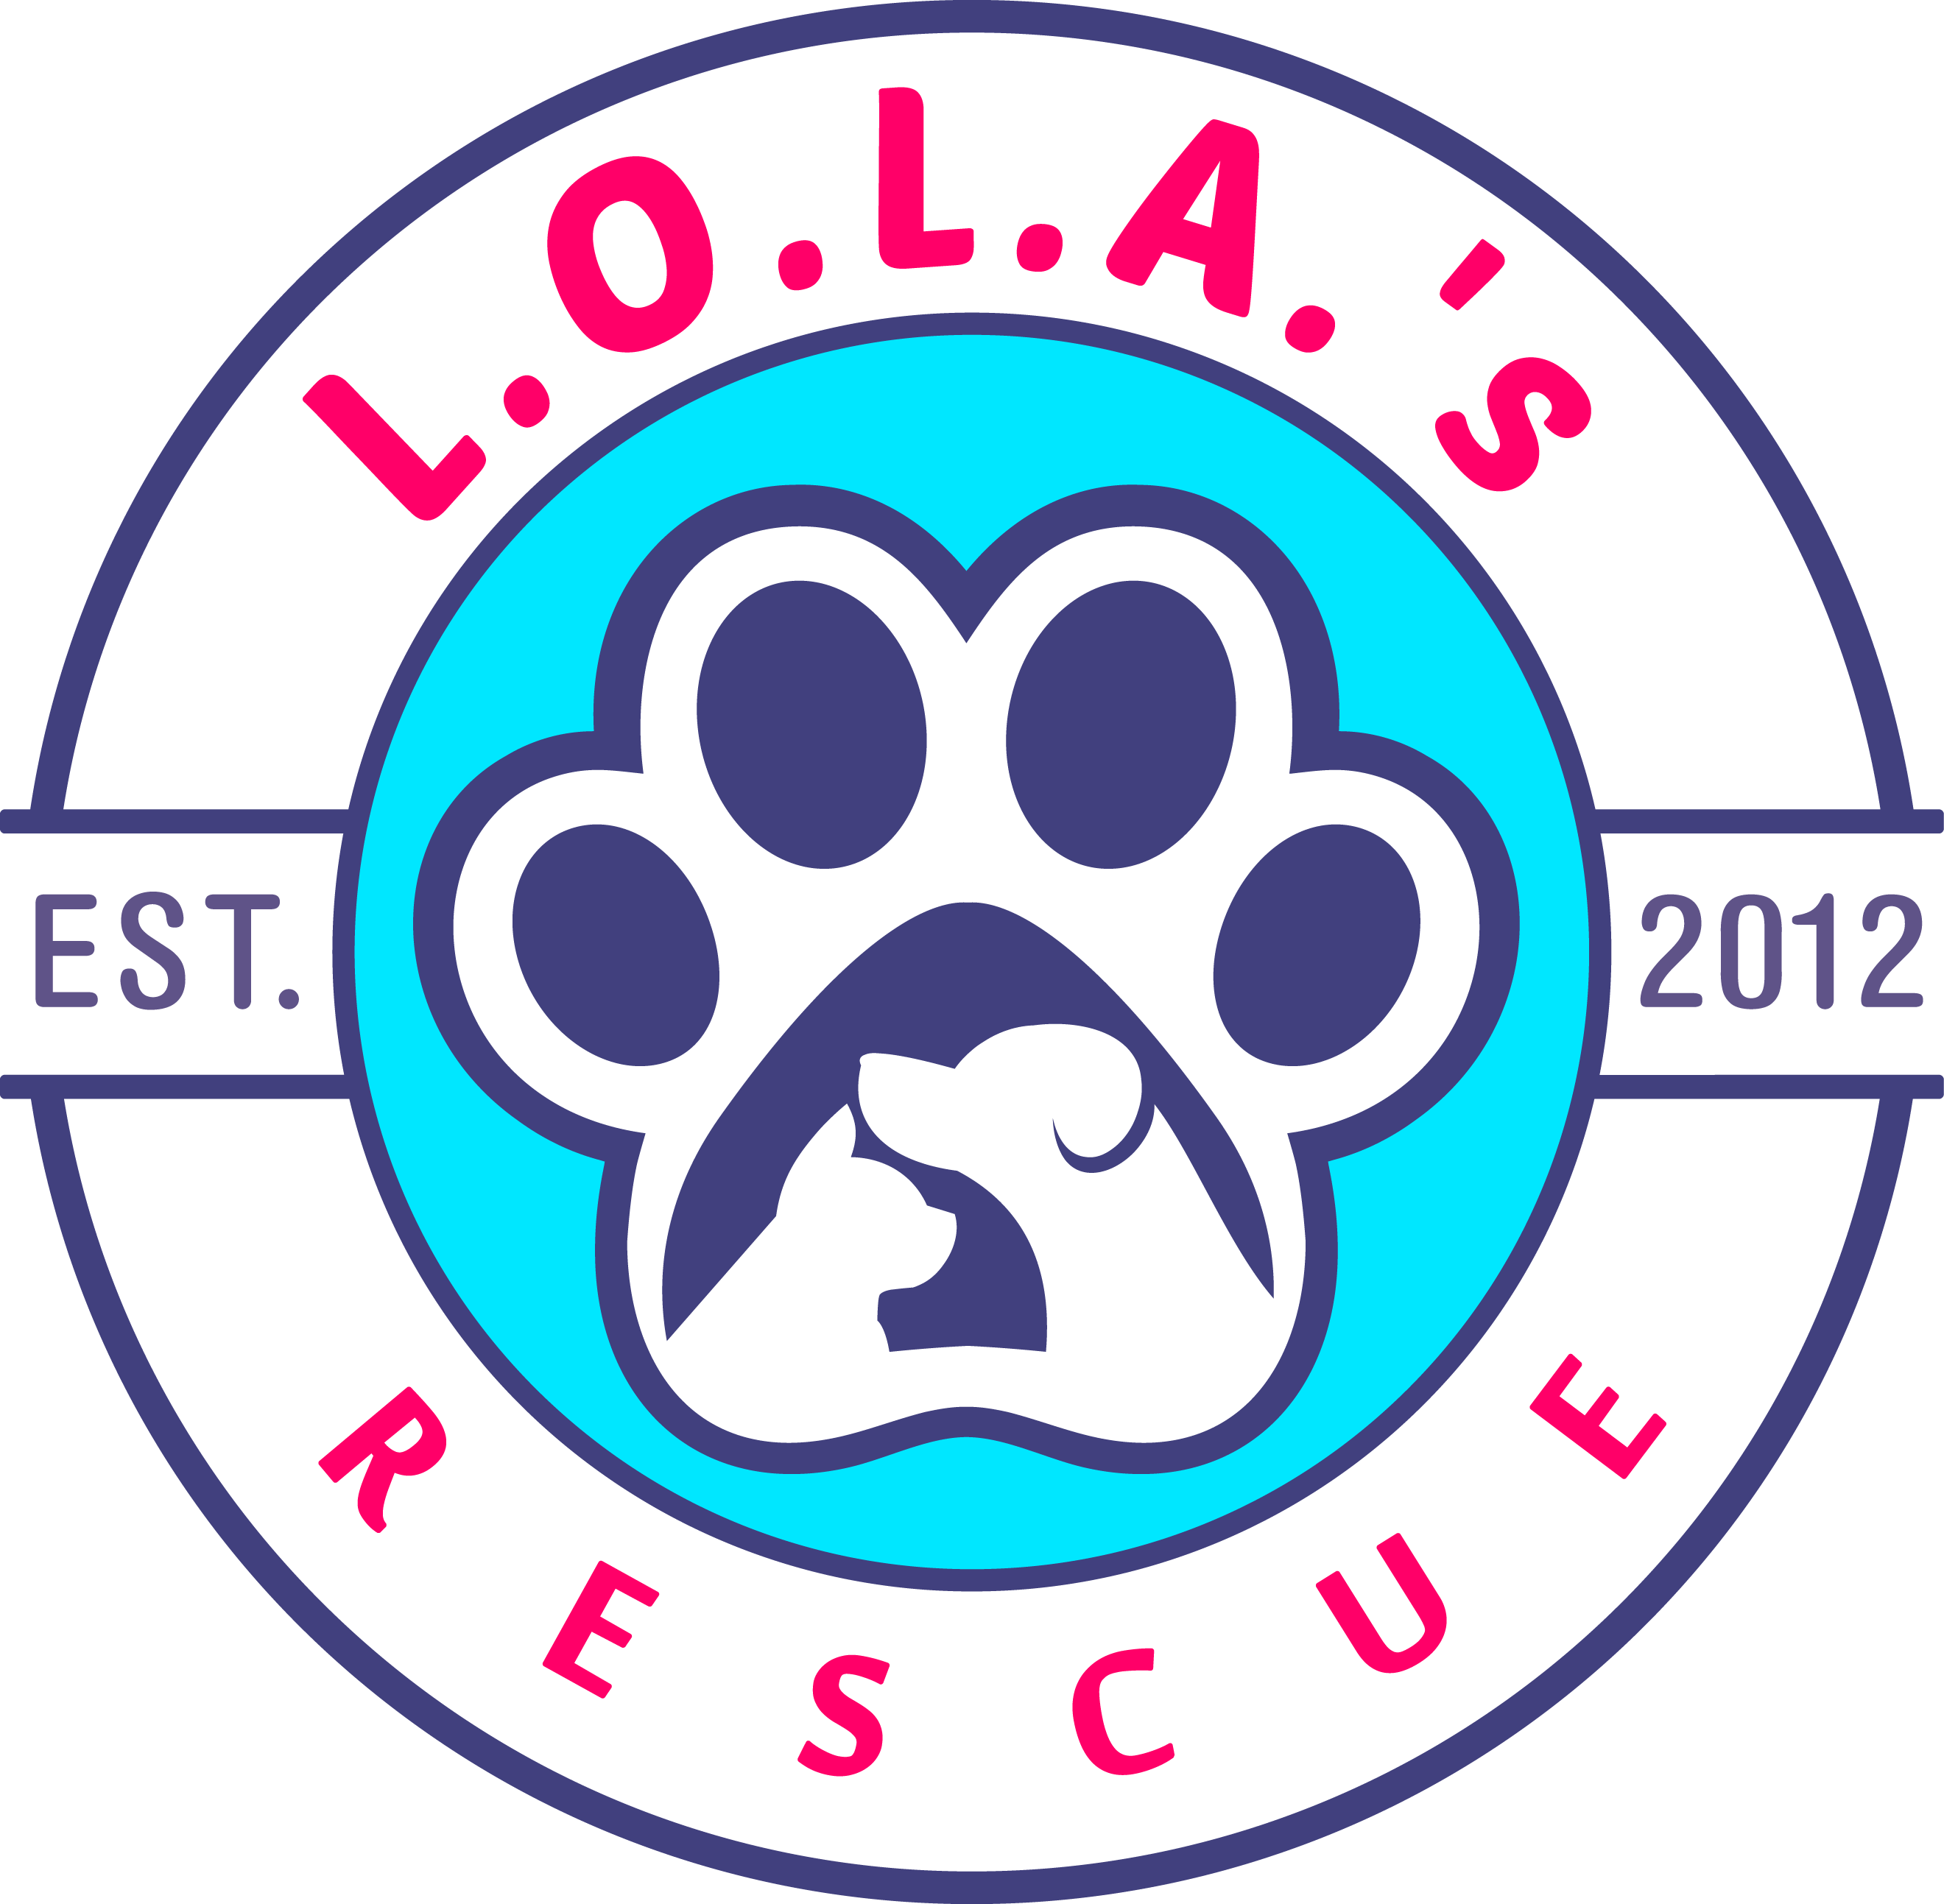 Animal rescue in need of saving!